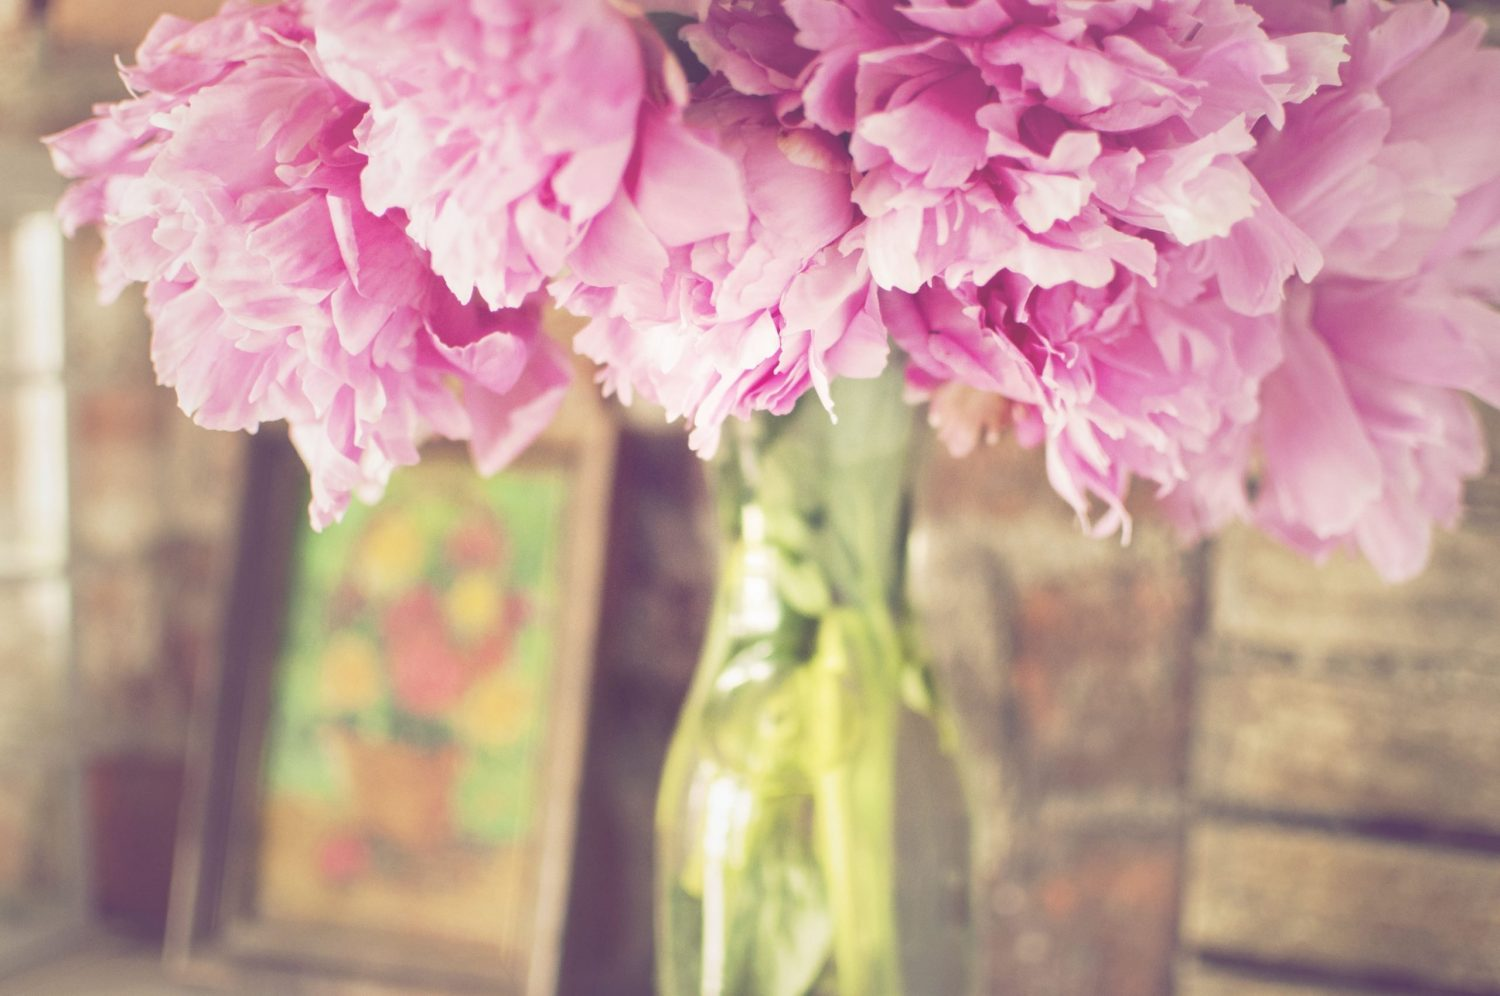 pink peonies in clear milk glass vase by brick wall